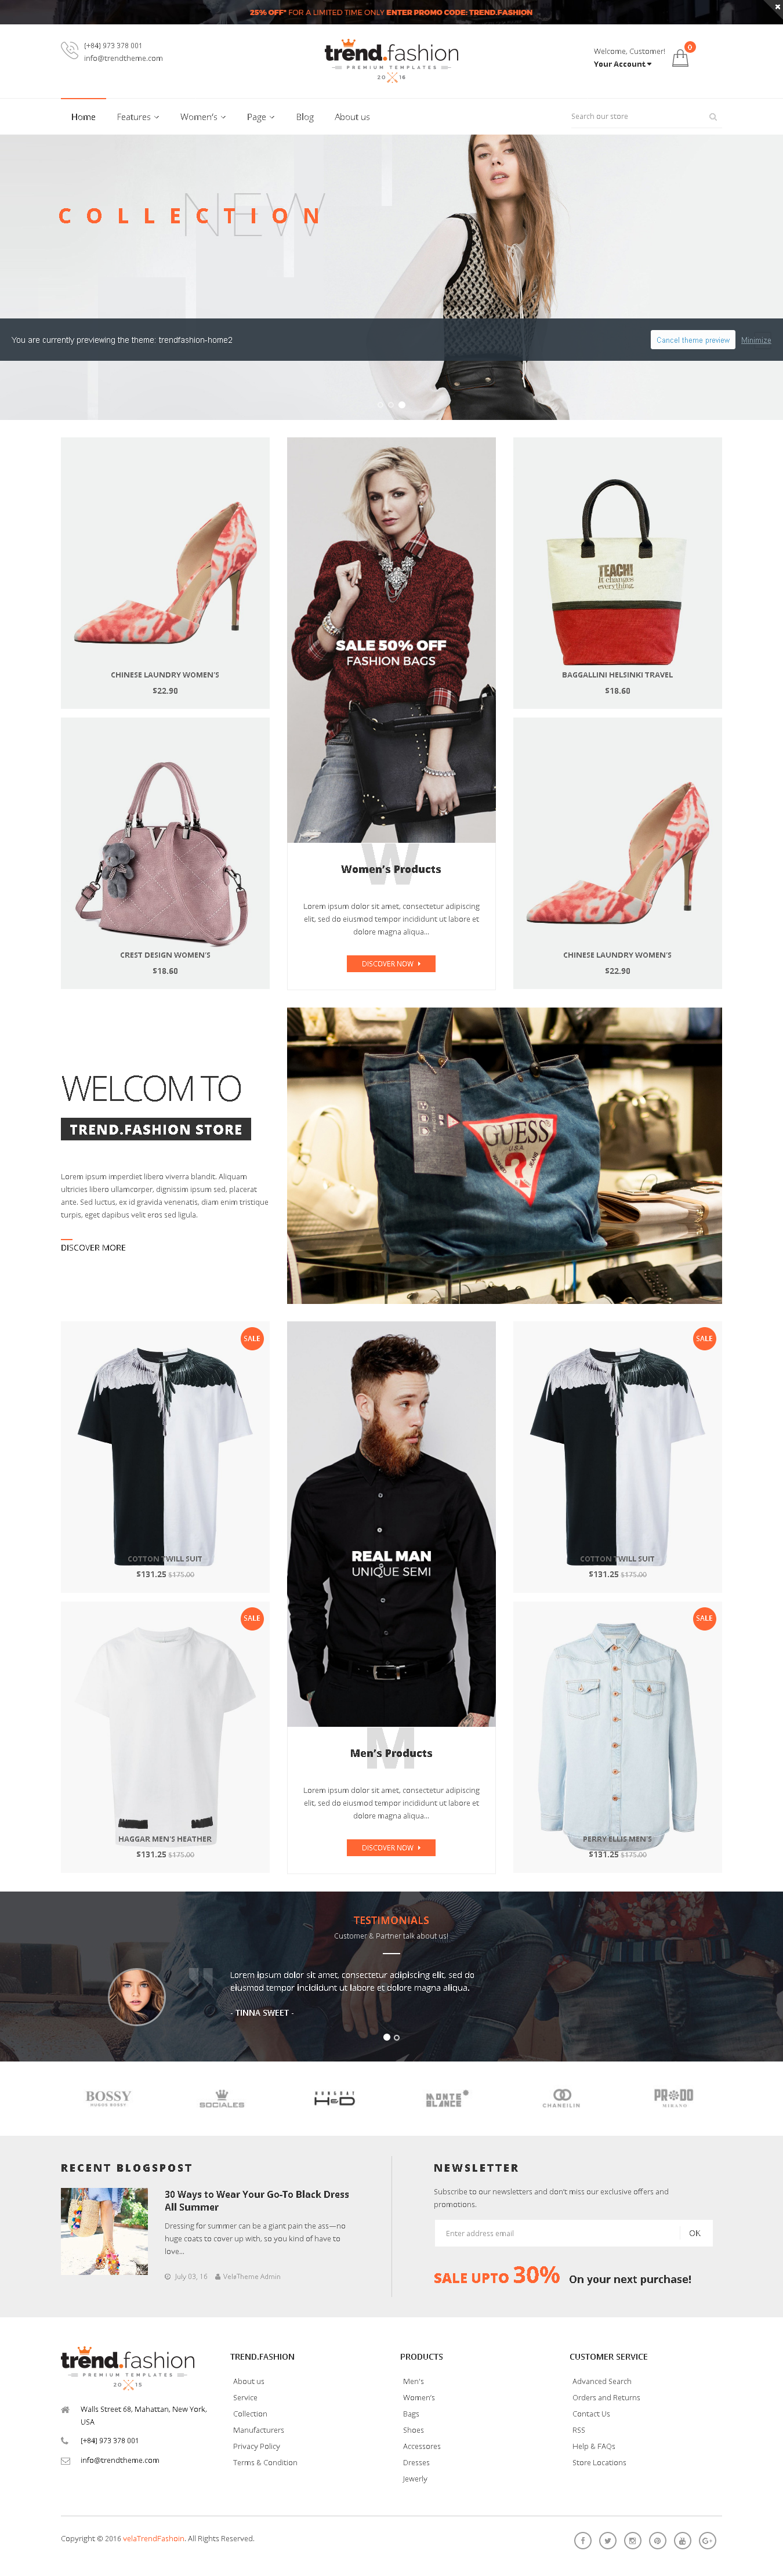 5 Best SHOPIFY Premium Themes Collection for Handbags Store 2017 - TrendFashion - Multipurpose Responsive Shopify theme